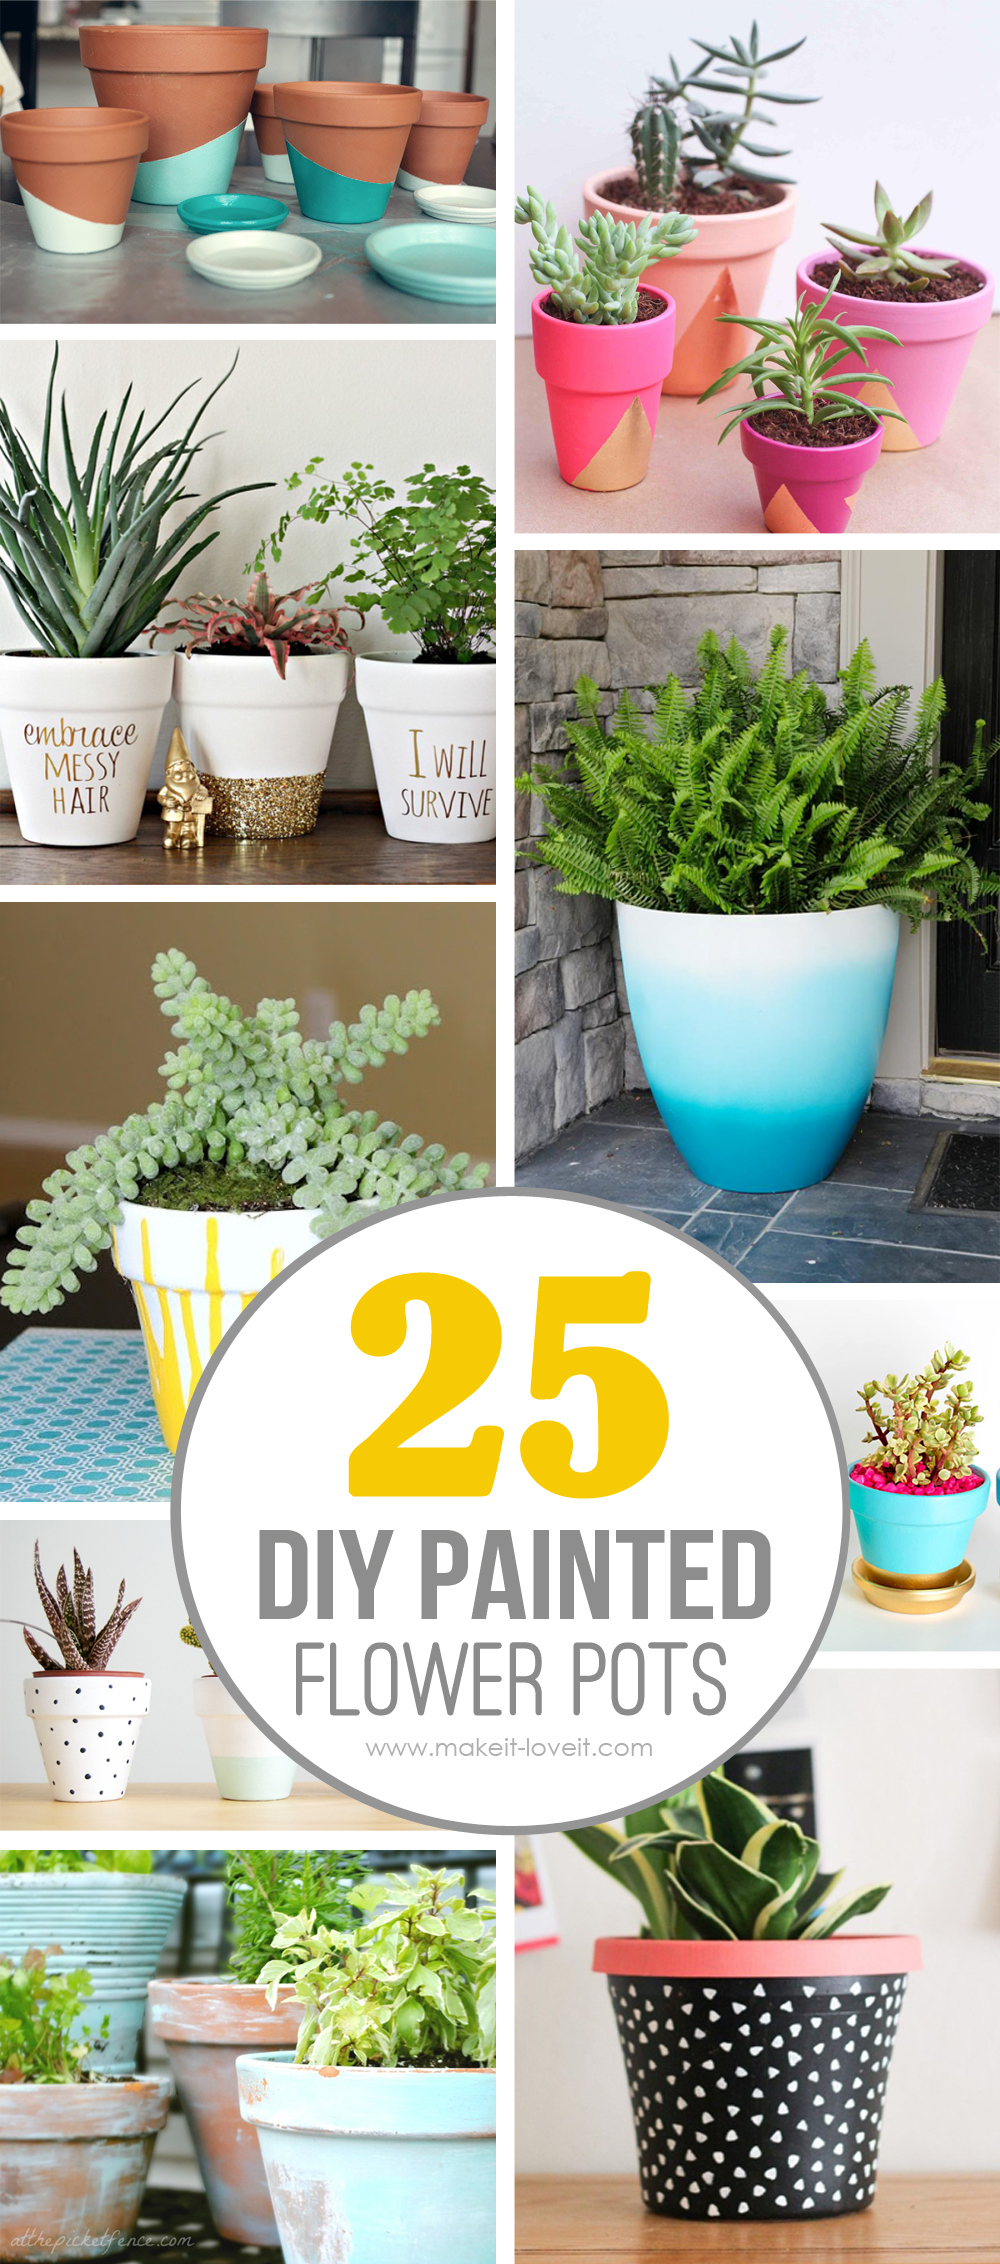 25 DIY Painted Flower Pot Ideas You'll LOVE